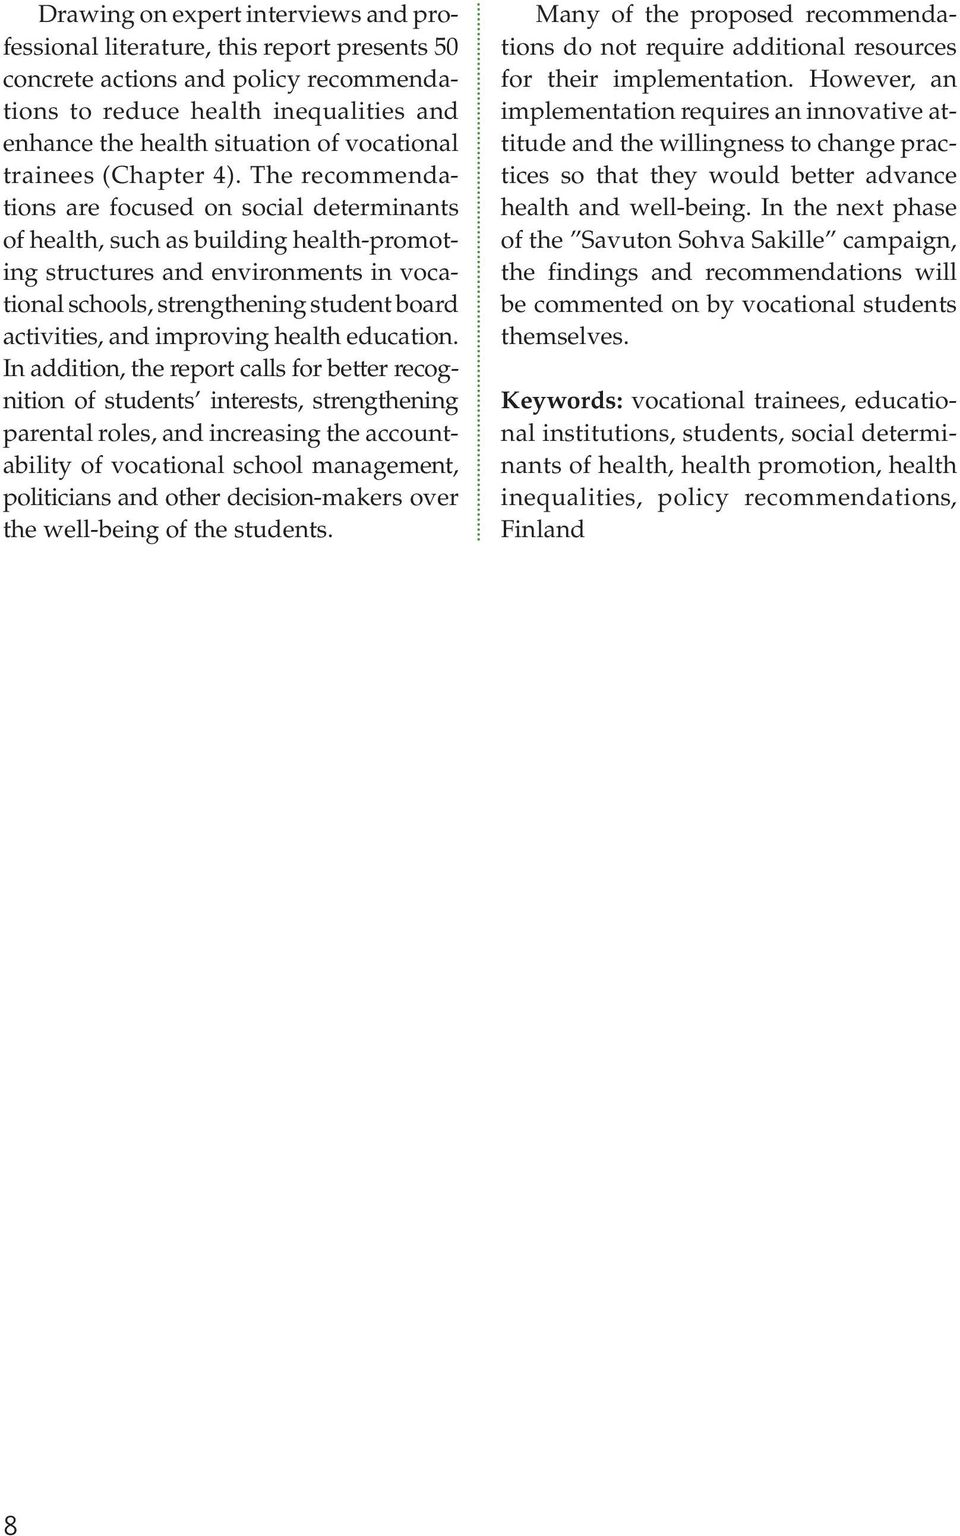 The recommendations are focused on social determinants of health, such as building health-promoting structures and environments in vocational schools, strengthening student board activities, and